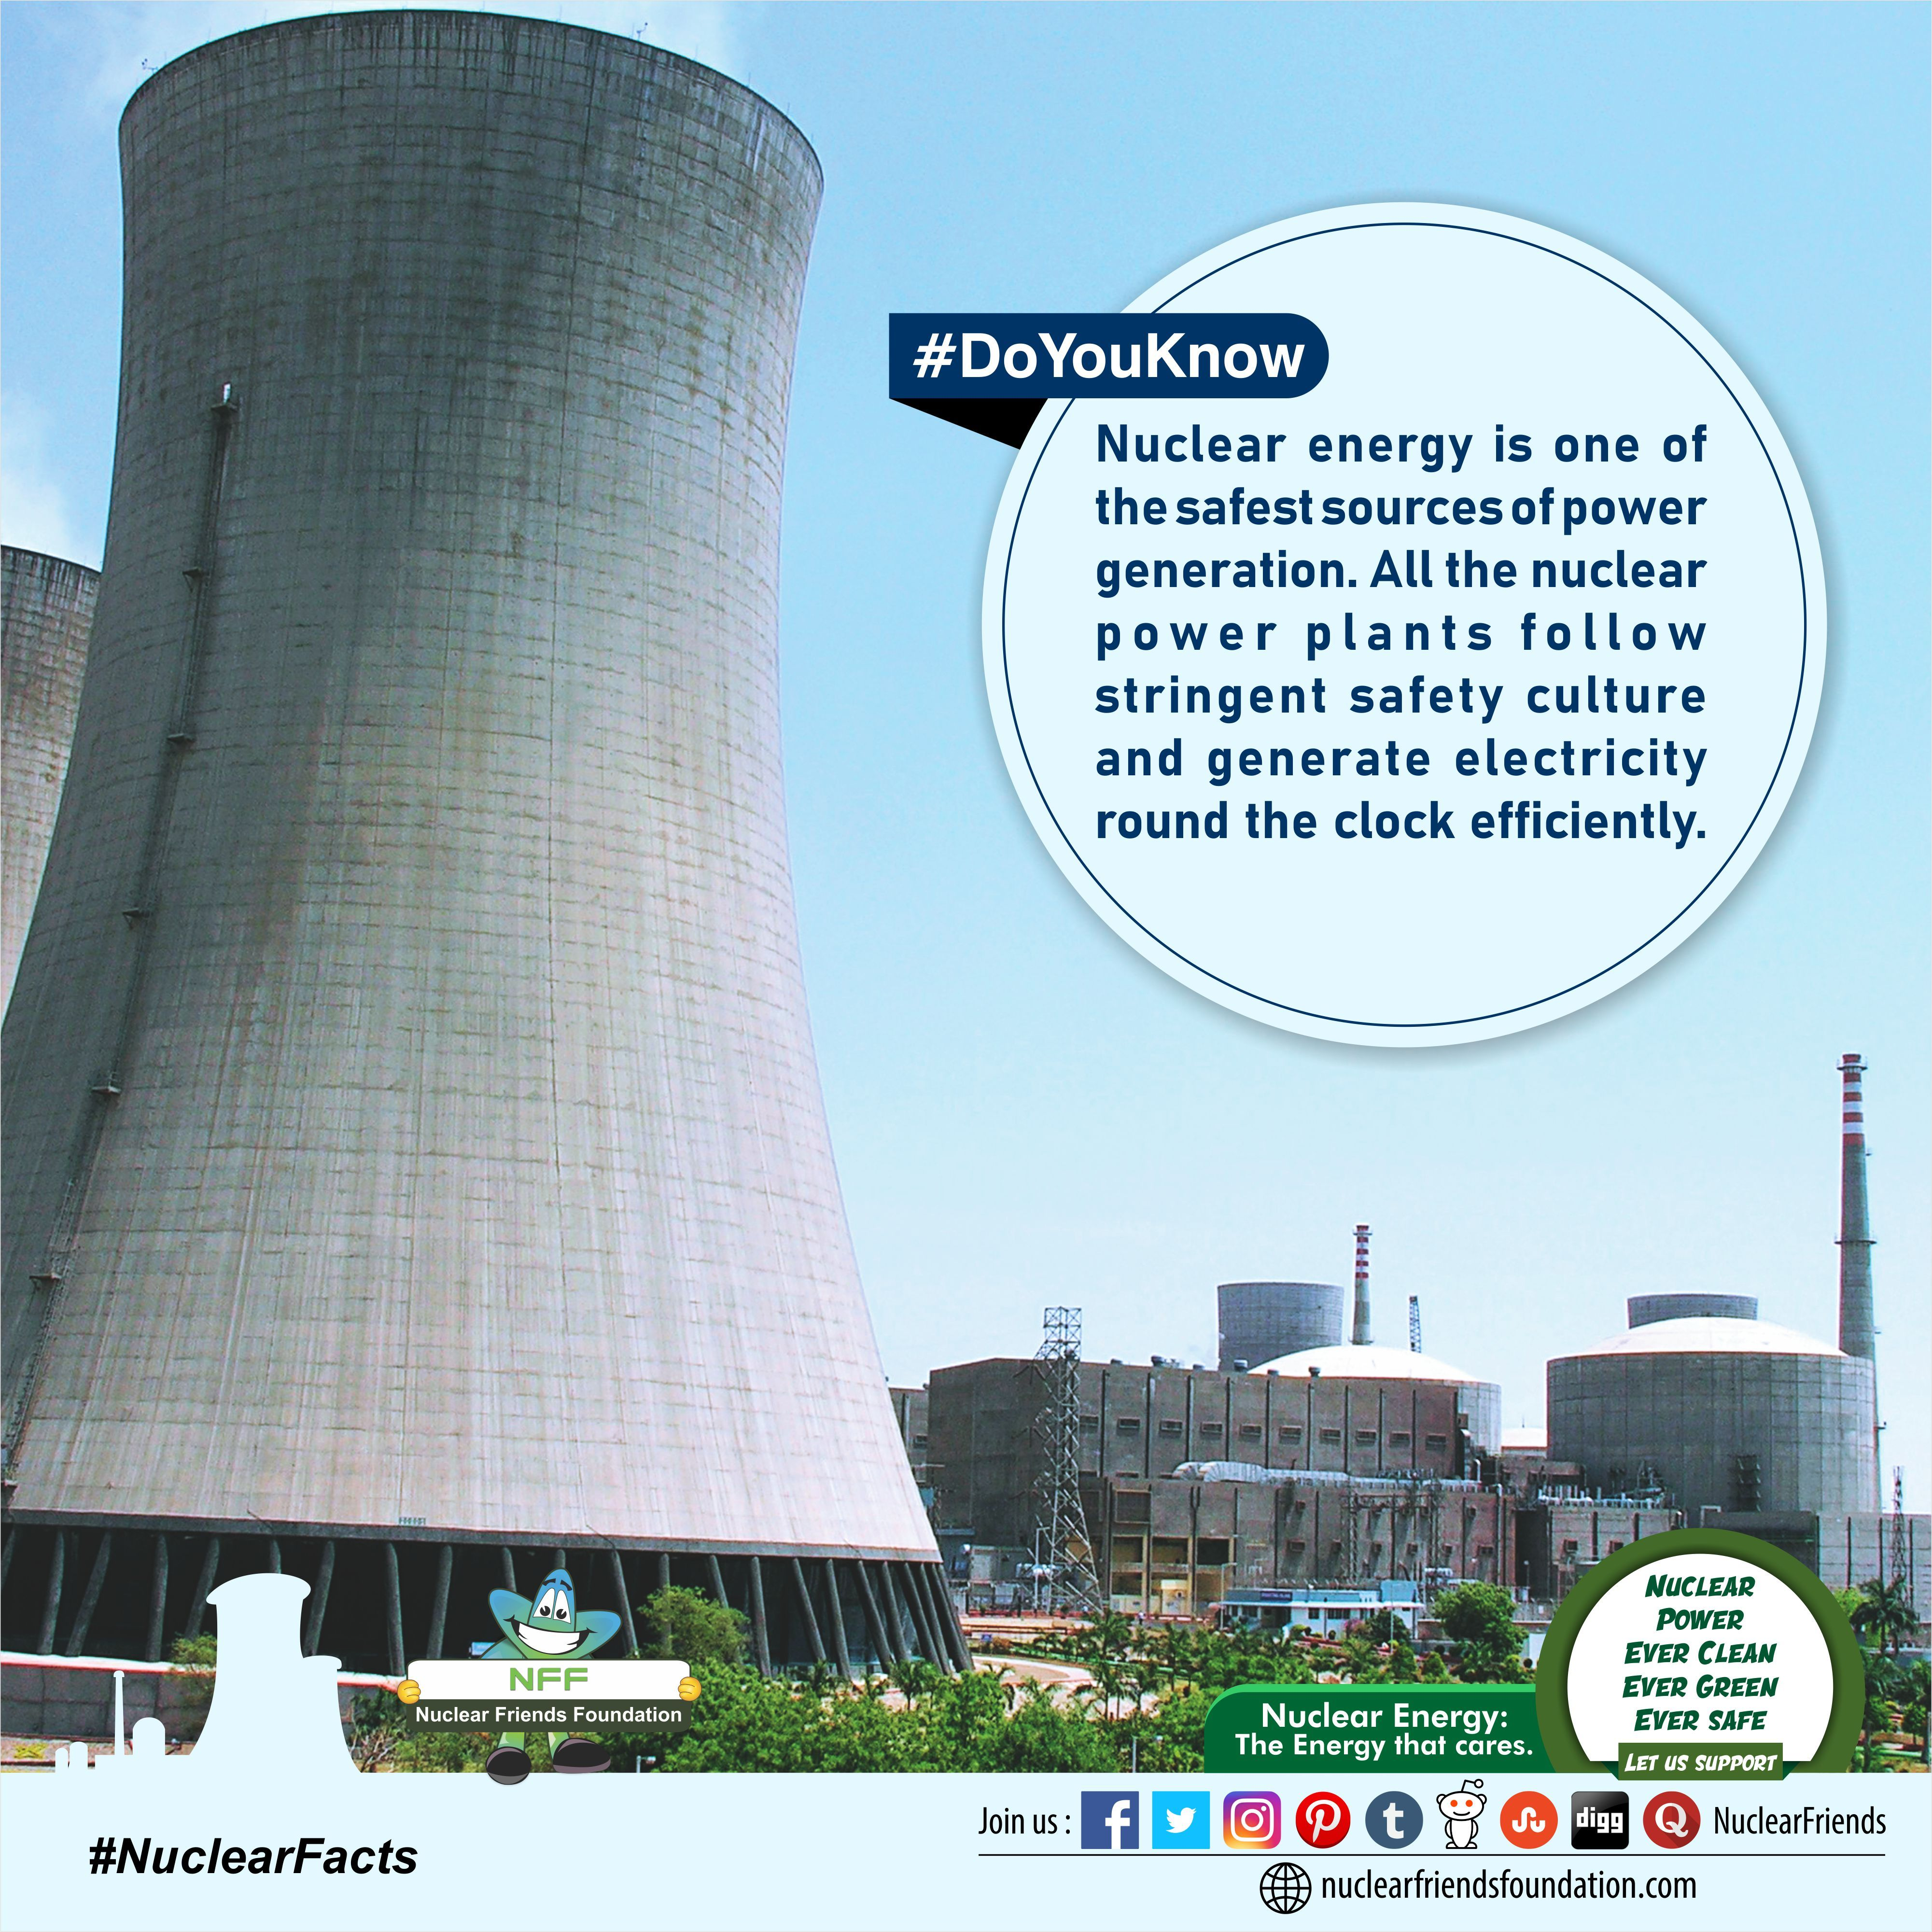 Doyouknow Nuclear Energy Is One Of The Safest Sources Of Power Generation All The Nuclear Power Plants Follow Stringent Safety Culture And Generate Electricit